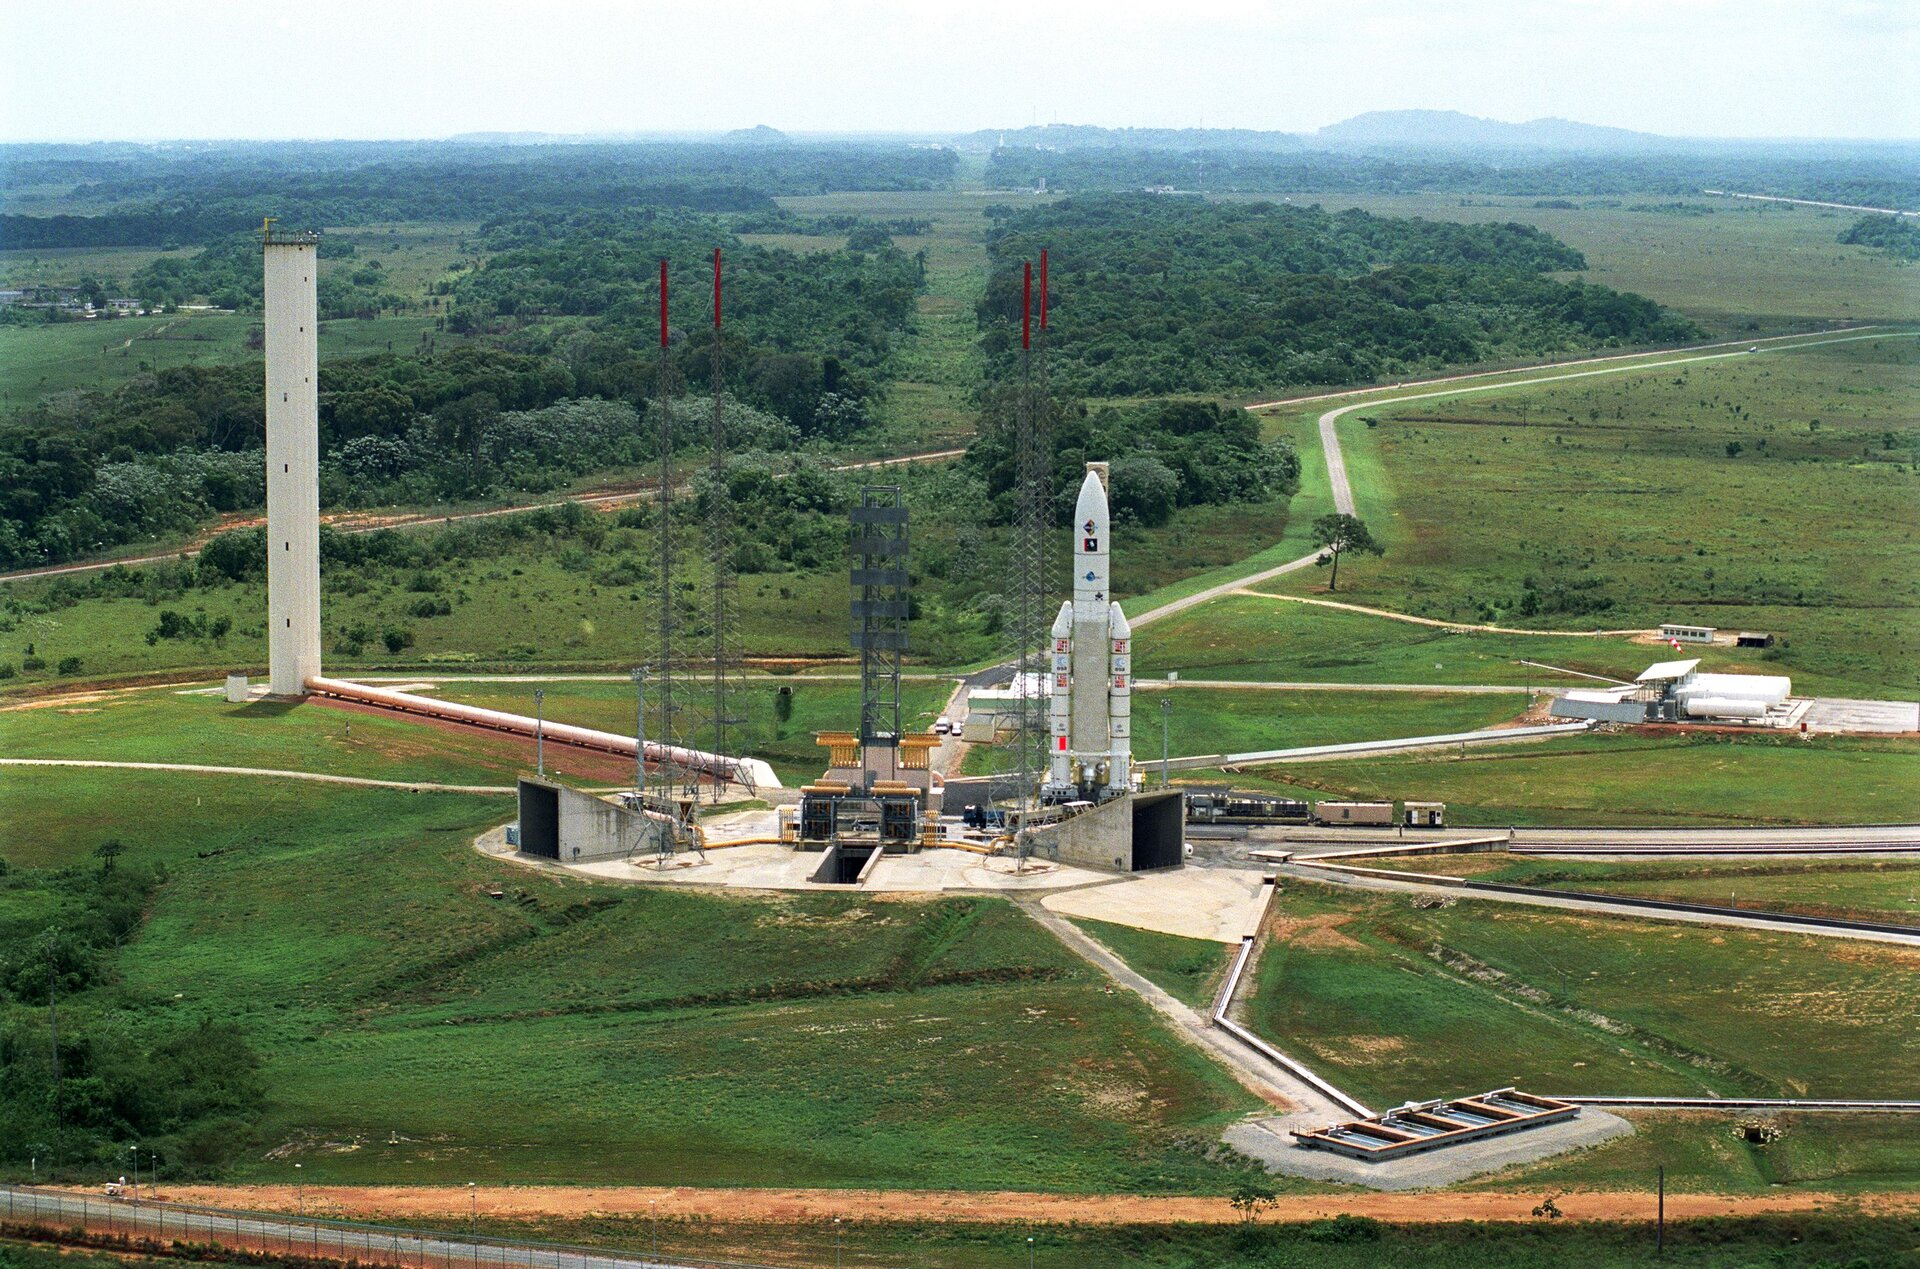 Ariane 5 launch pad at Kourou